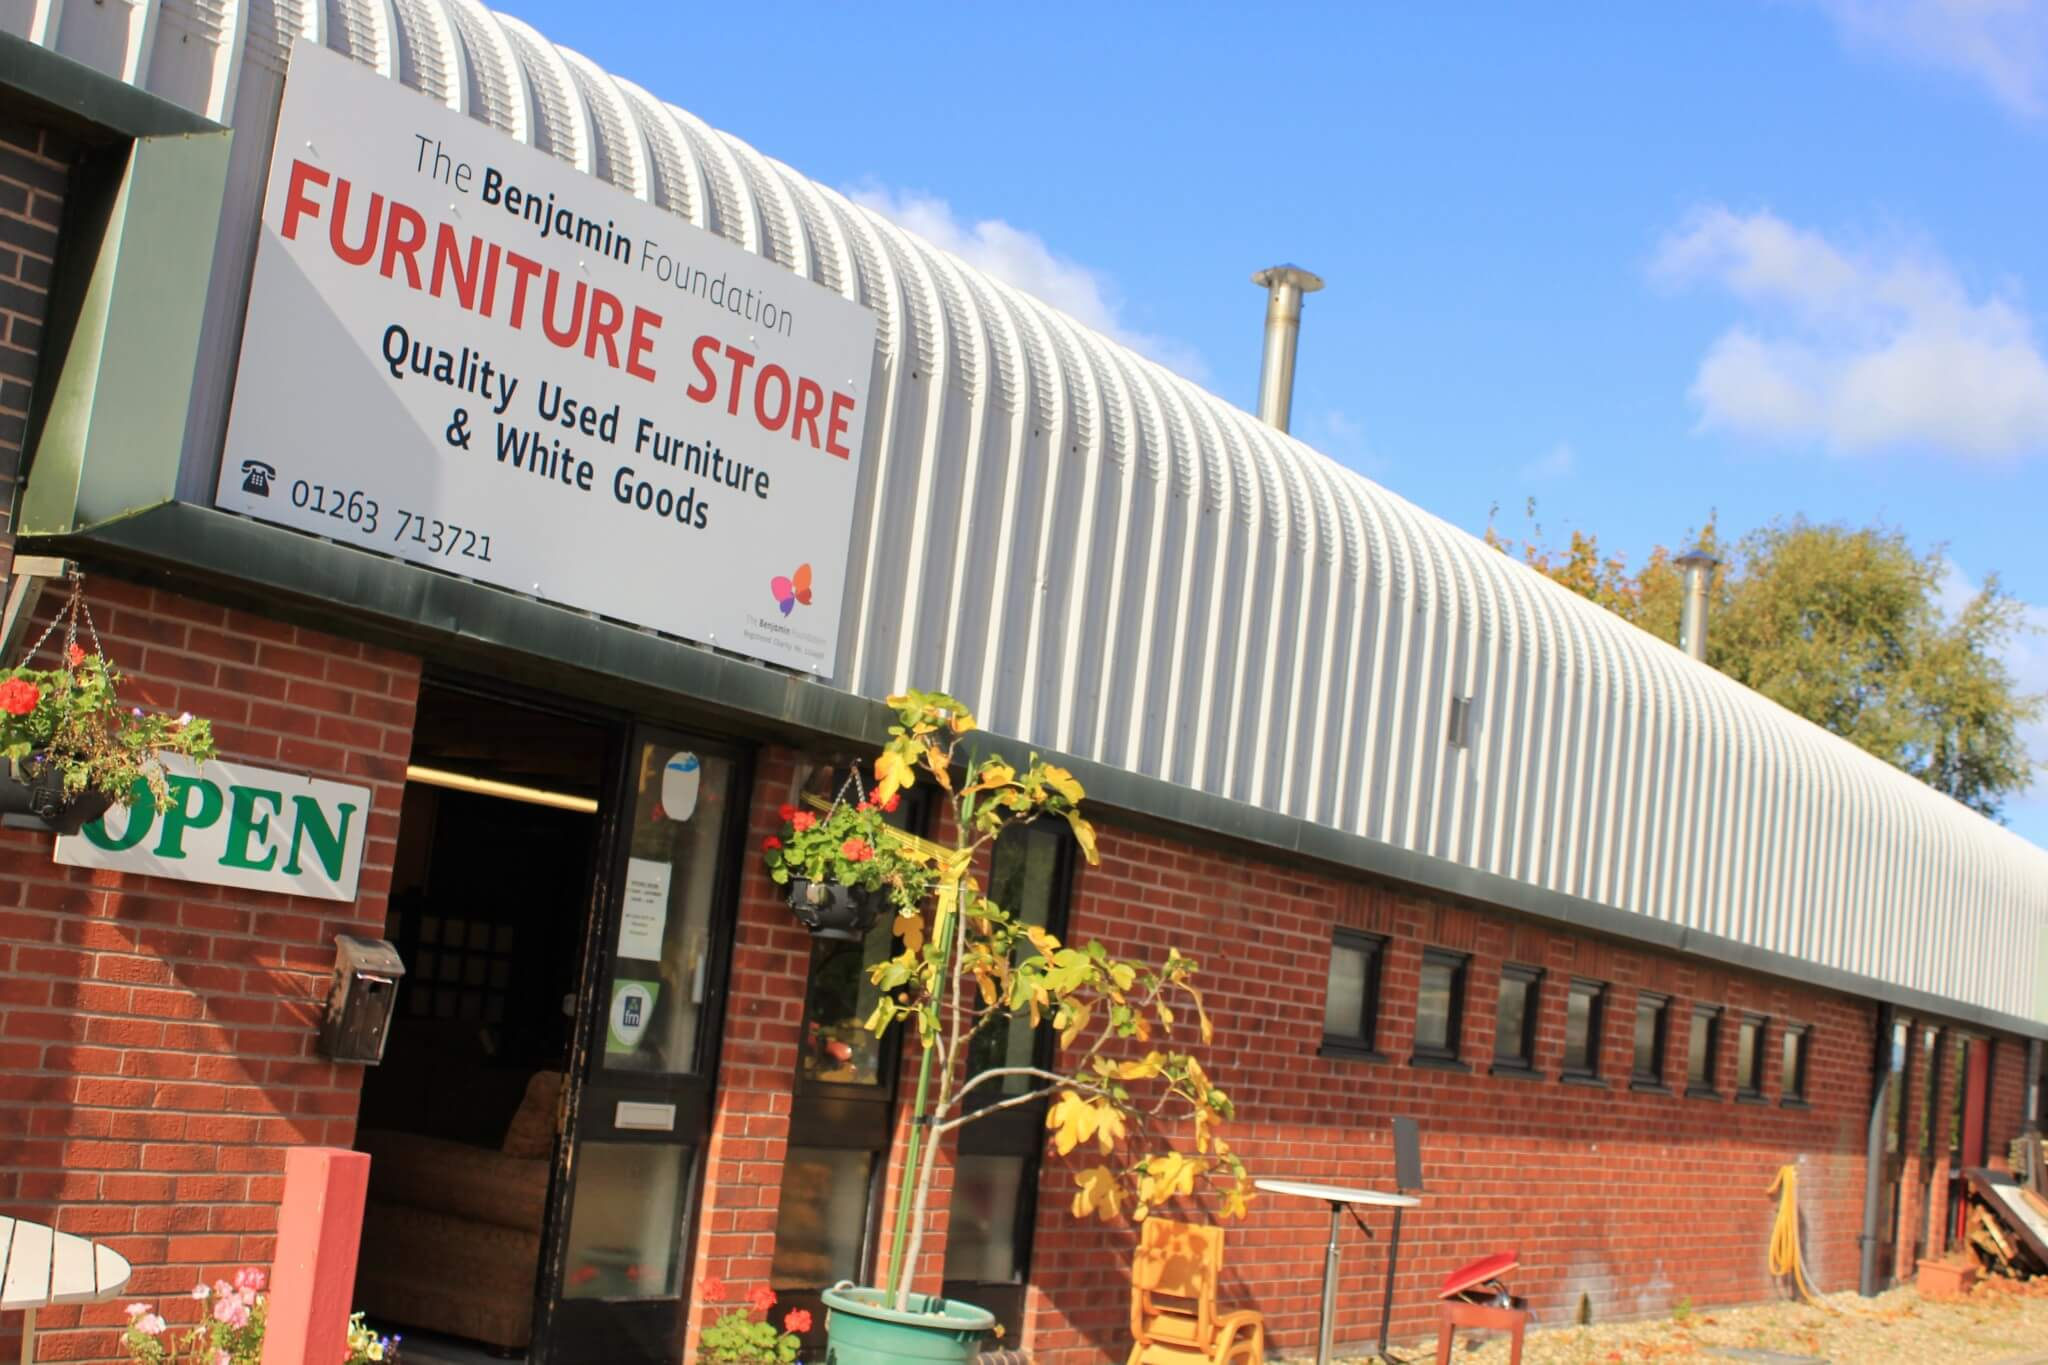 Holt Furniture Store - exterior